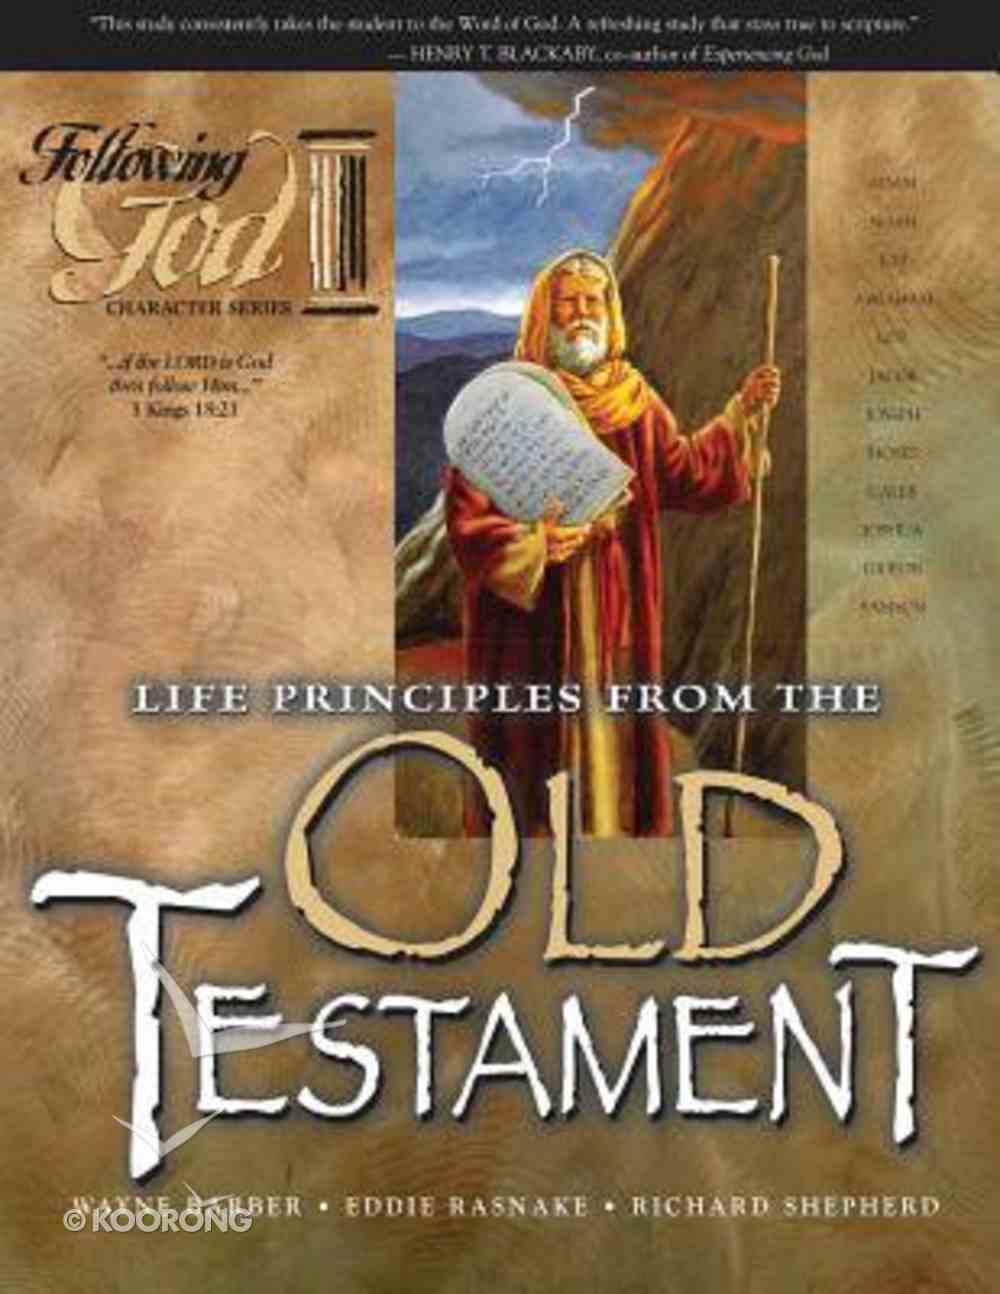 Life Principles From the Personalities of the Old Testament (Following God: Character Builders Series) Paperback